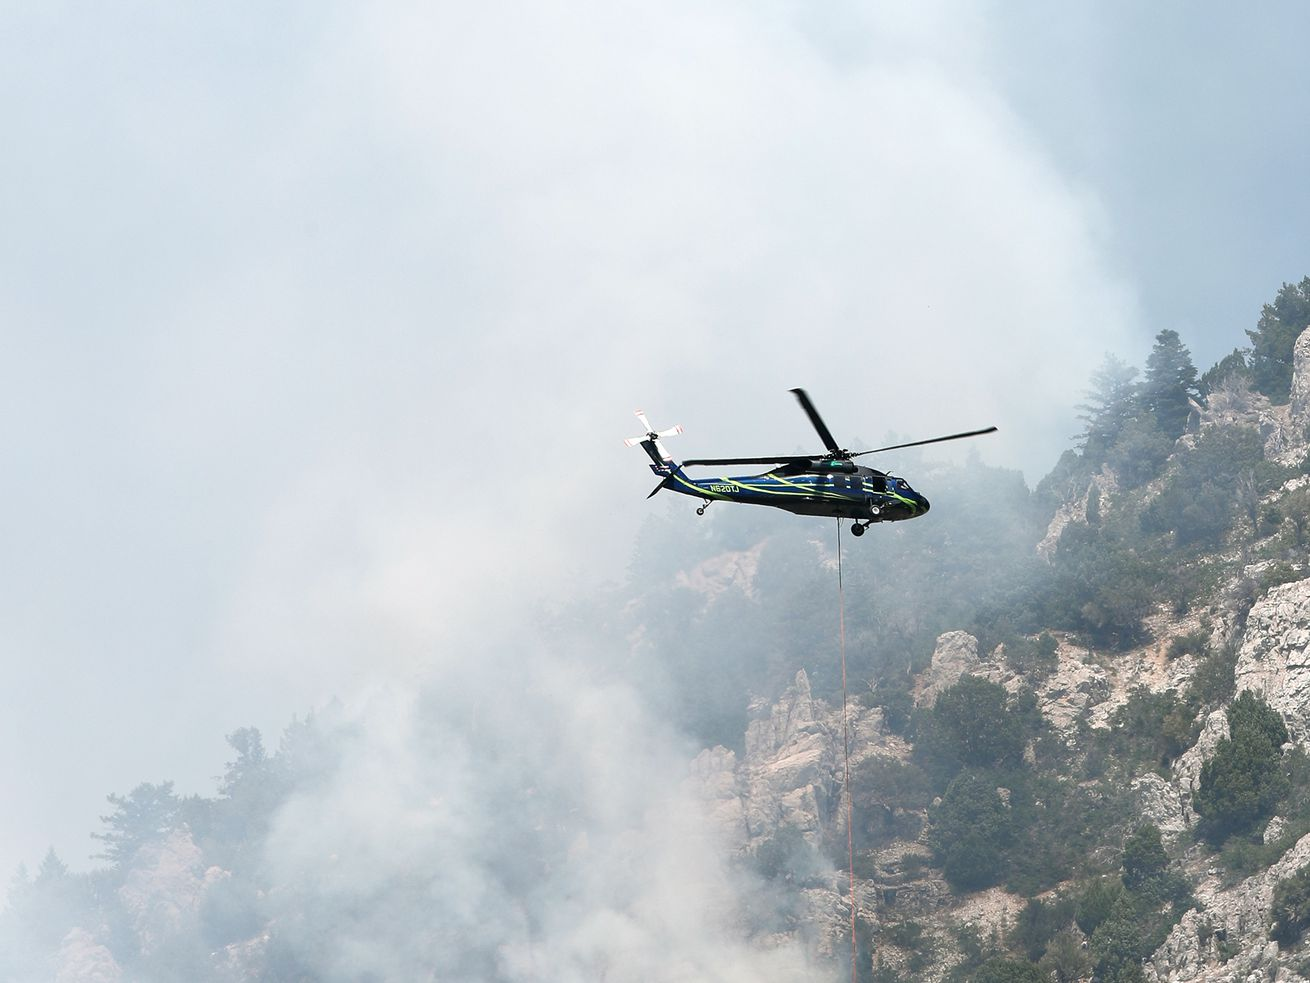 Wildfire east of North Ogden has burned an estimated 30 acres so far